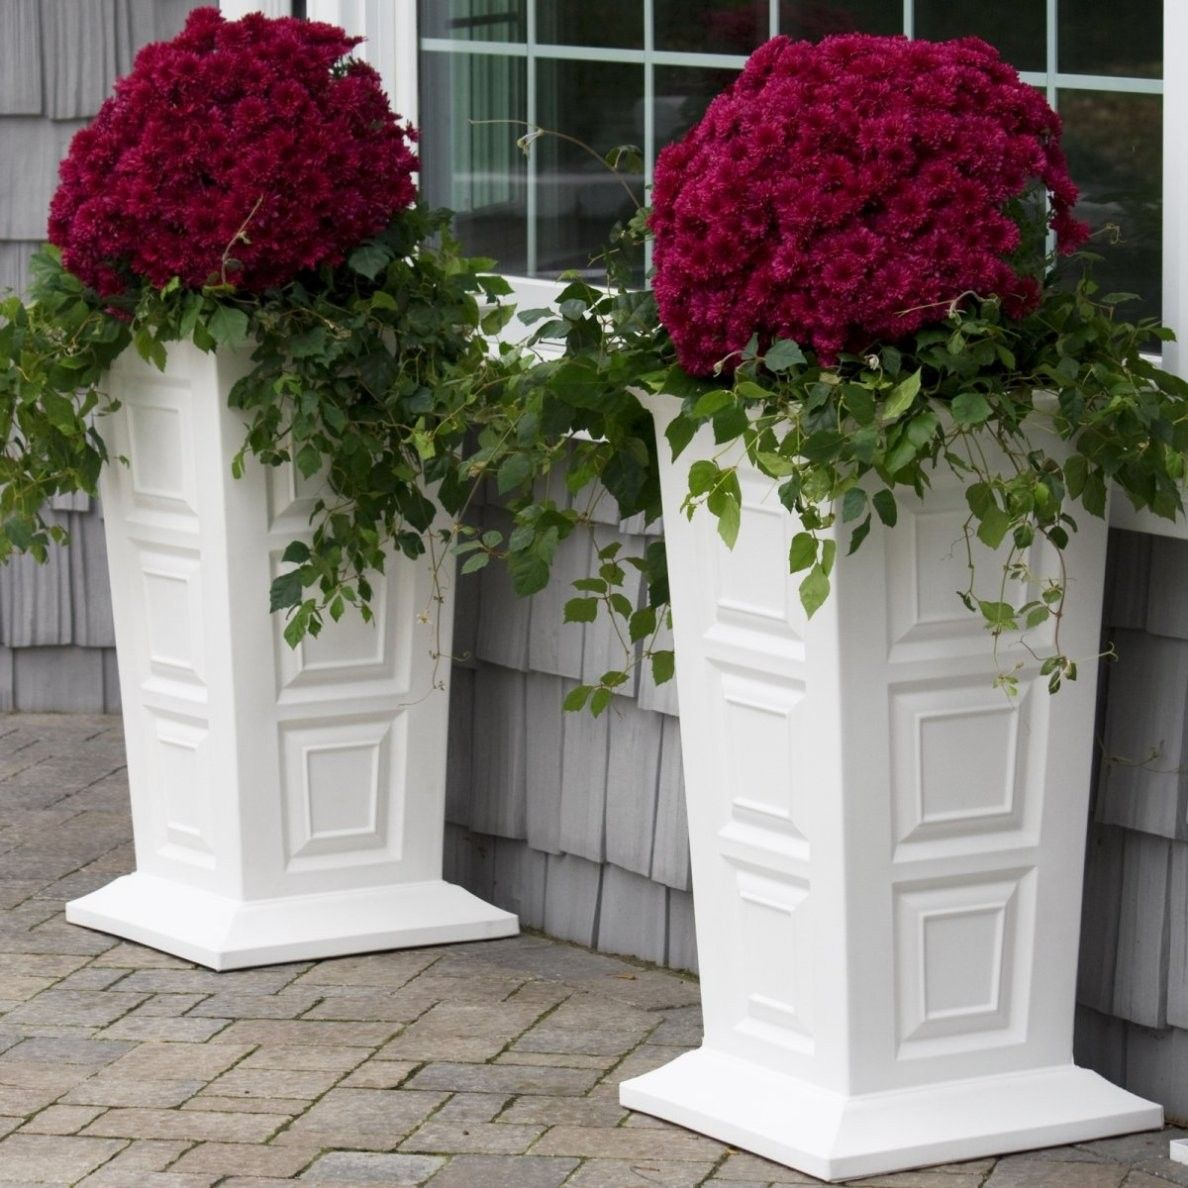 How To Make Beautiful Flower Pots At Home Decor Make Your Garden More Beautiful With Tall Planters